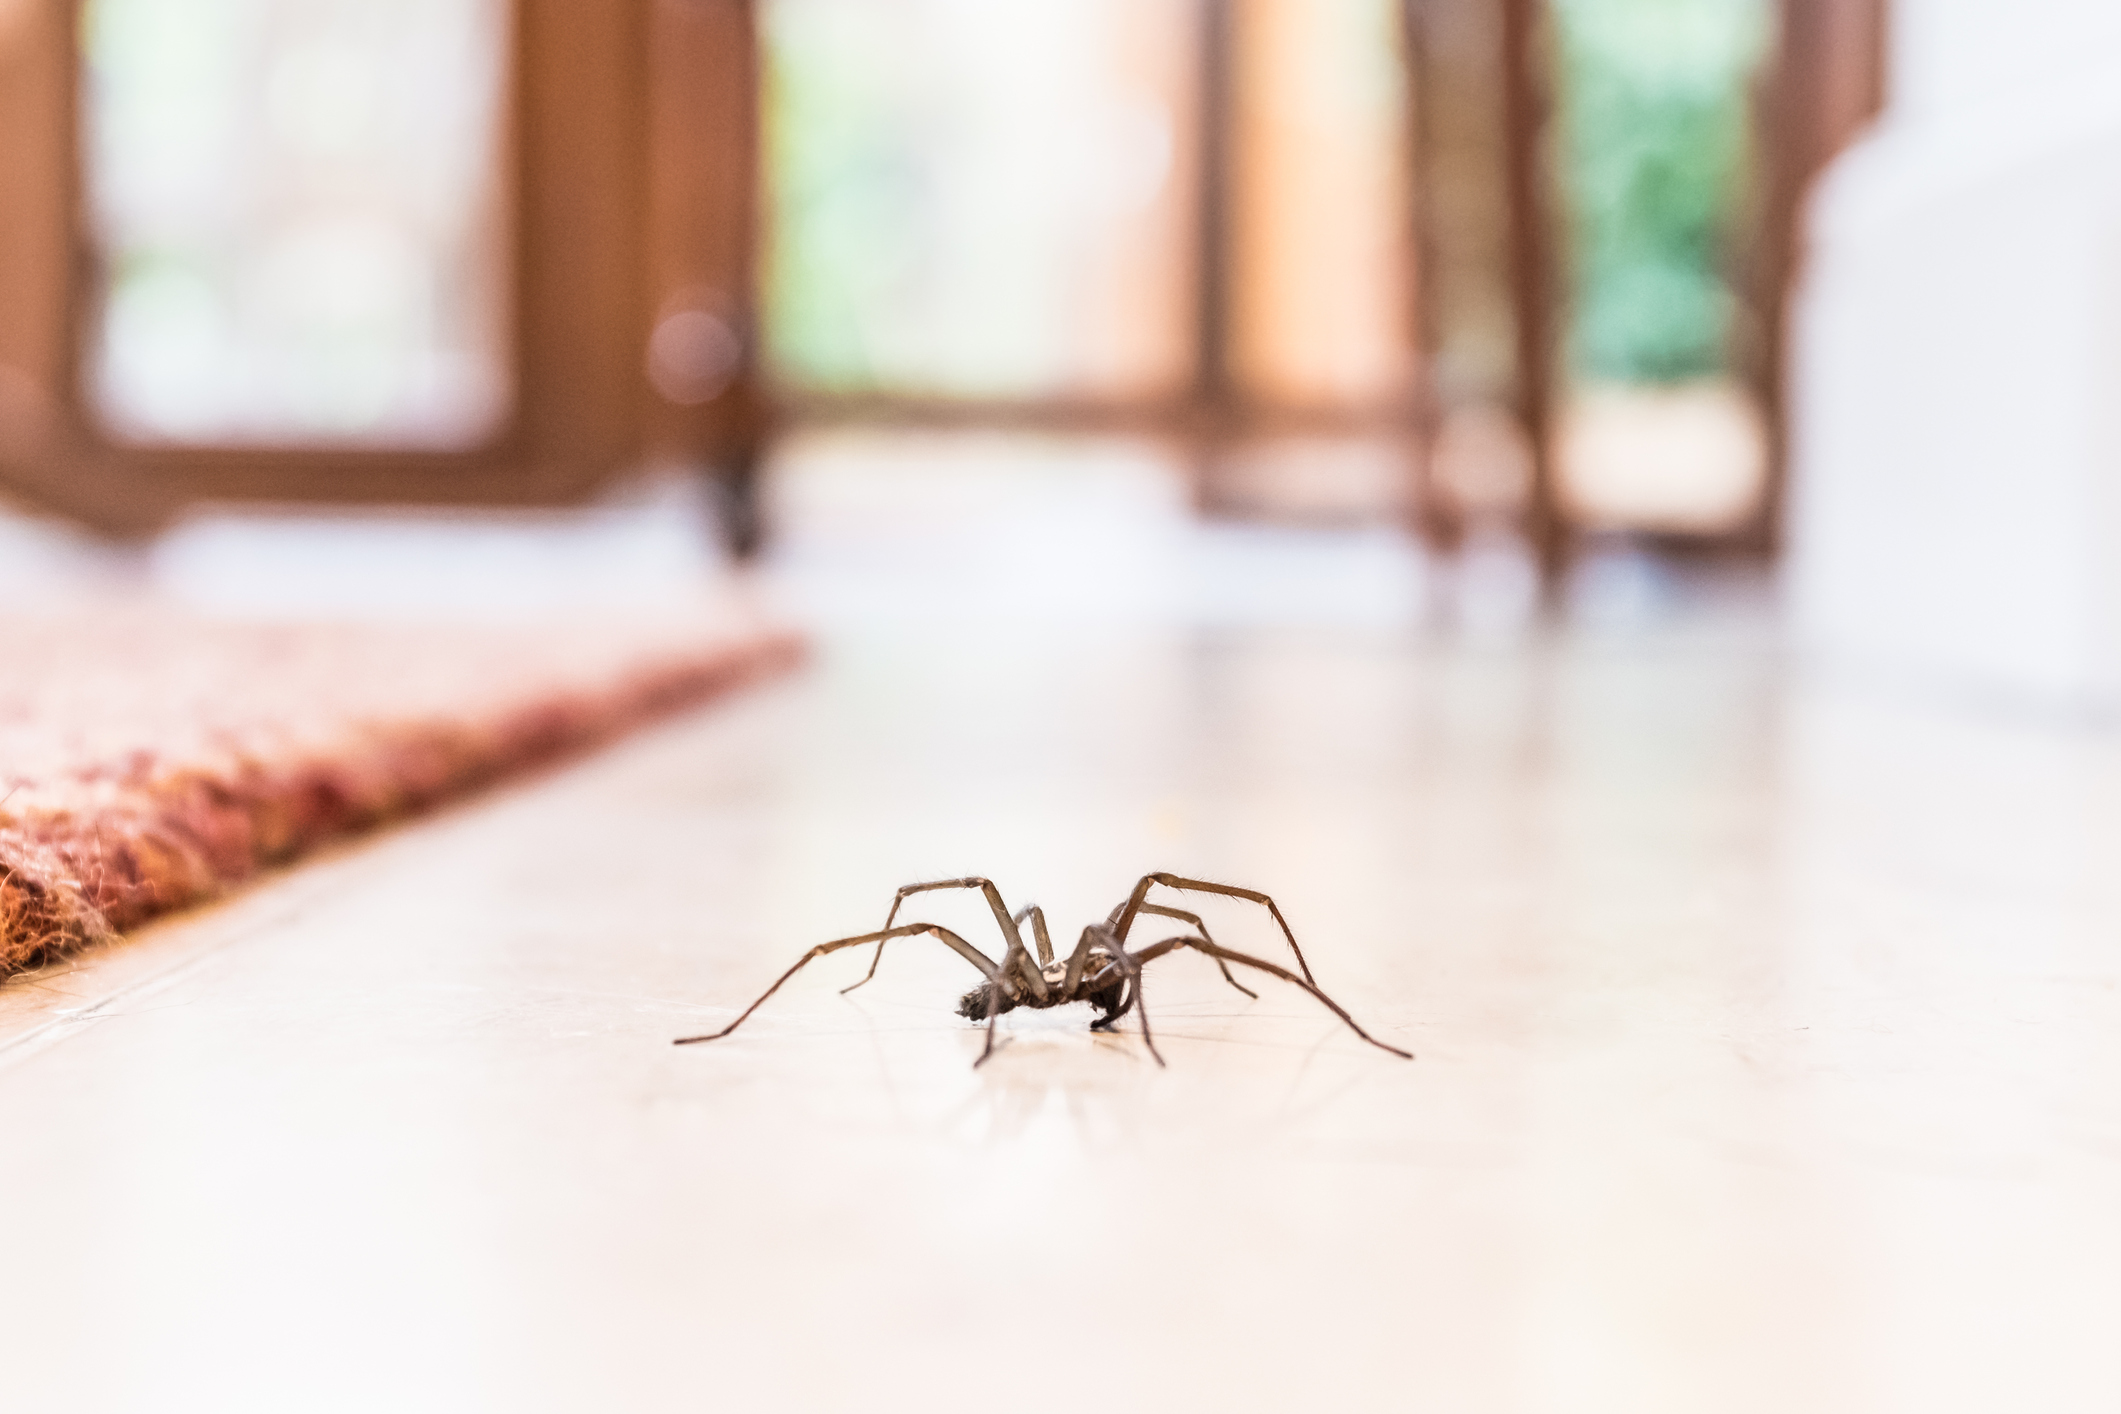 Some spider bites can really pack a punch. For serious infections, seek the help of the experts at the Methodist Wound Treatment Center.